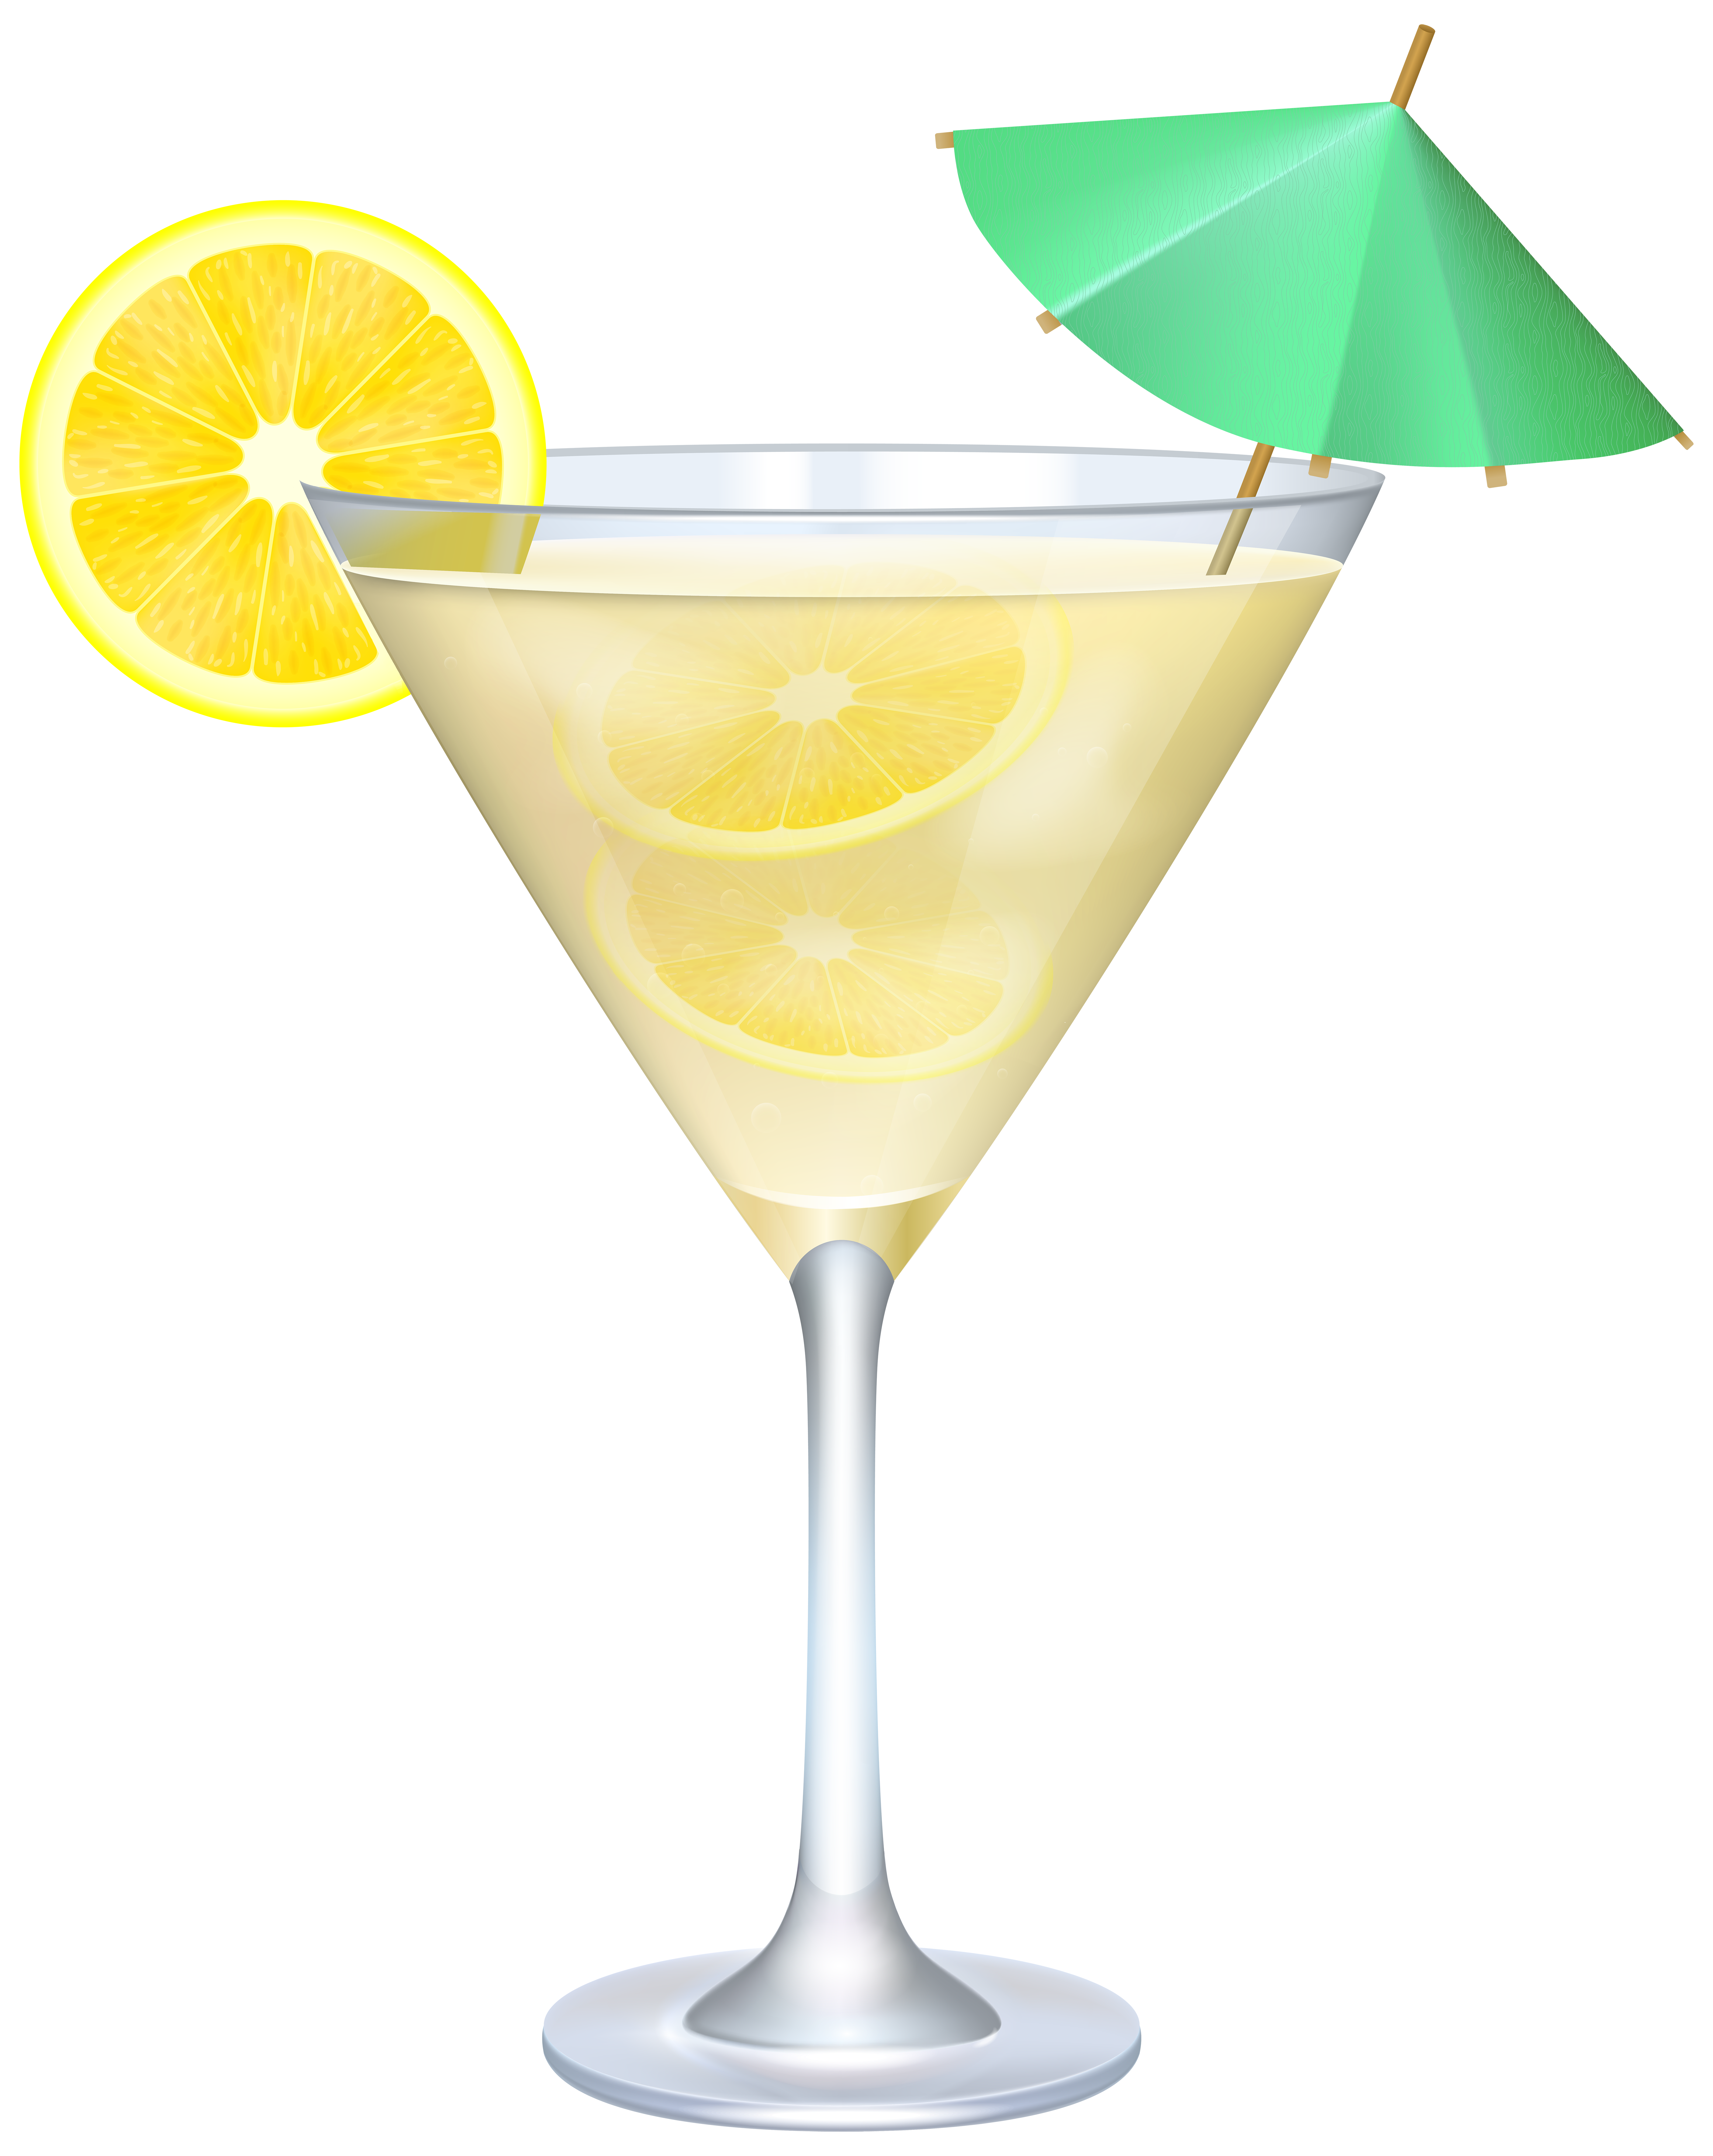 Apple spice mixed drink clipart image transparent library Cocktail with Lemon and Umbrella PNG Clip Art Image | backgrounds ... image transparent library